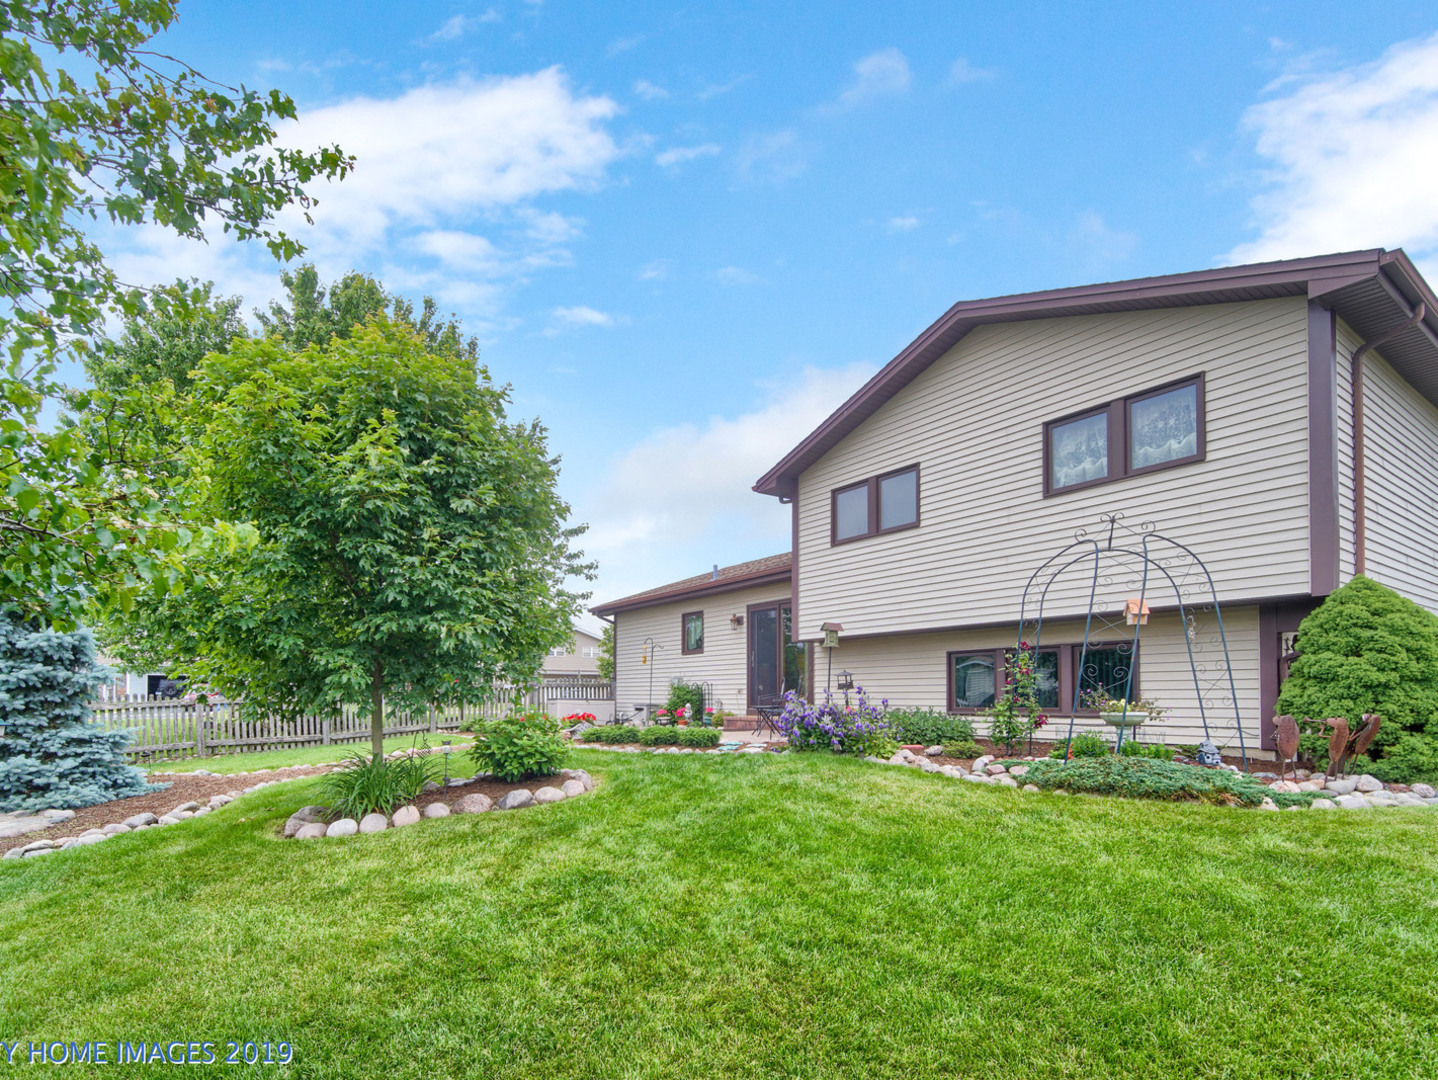 7513 West Tartan, Frankfort, Illinois, 60423